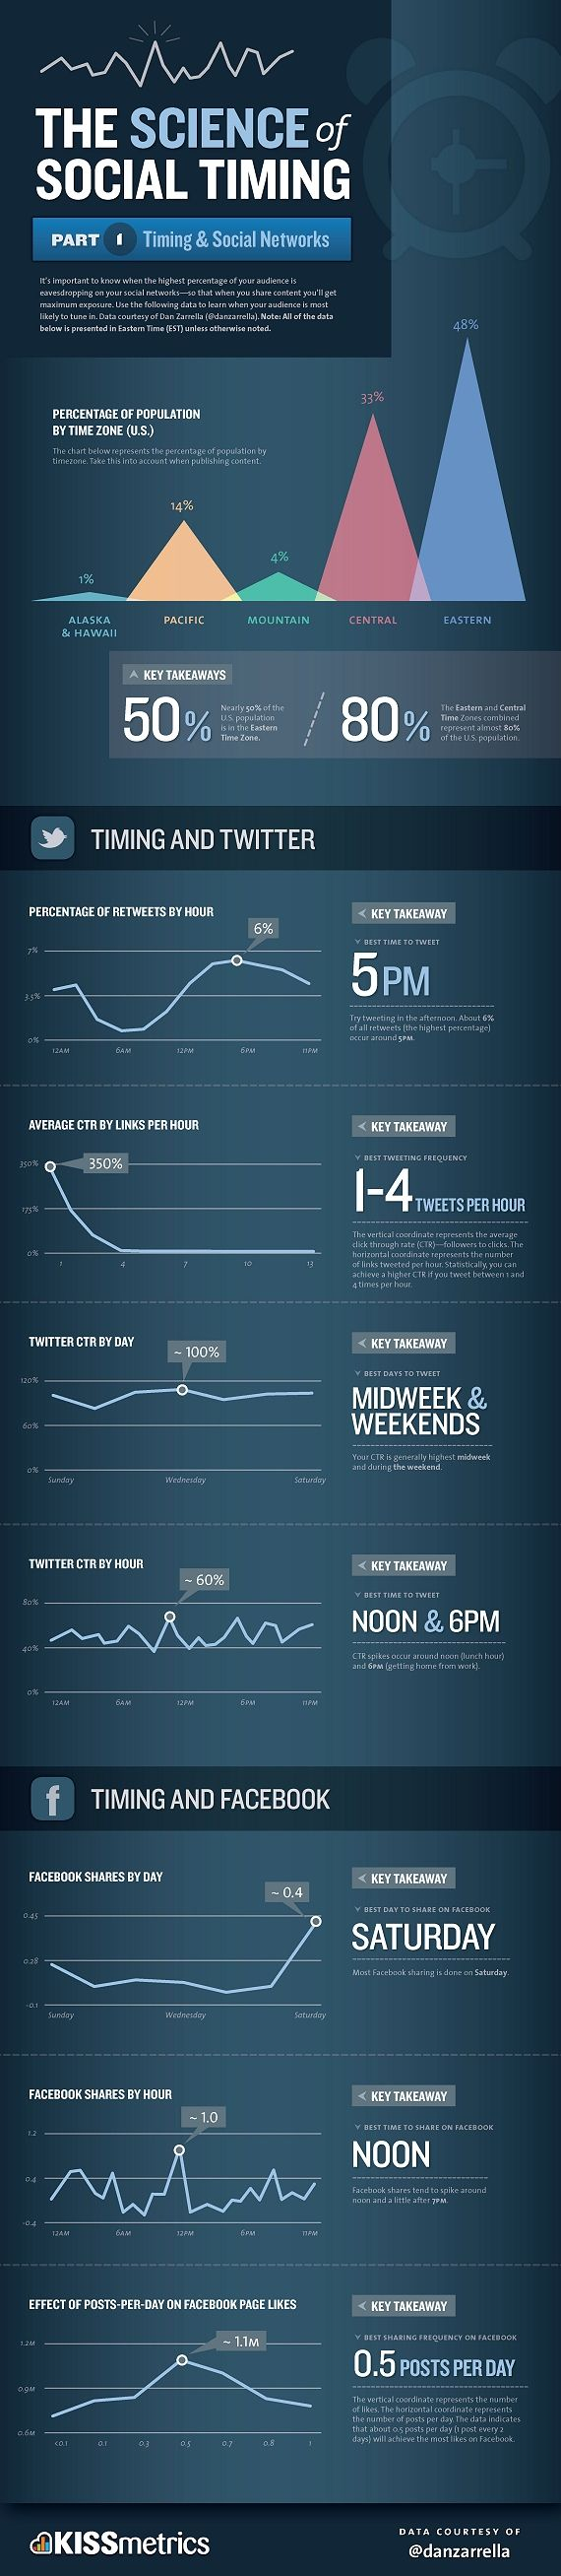 The science of social timing Part 1: social networks  #SocialMedia #Timing #Infographic